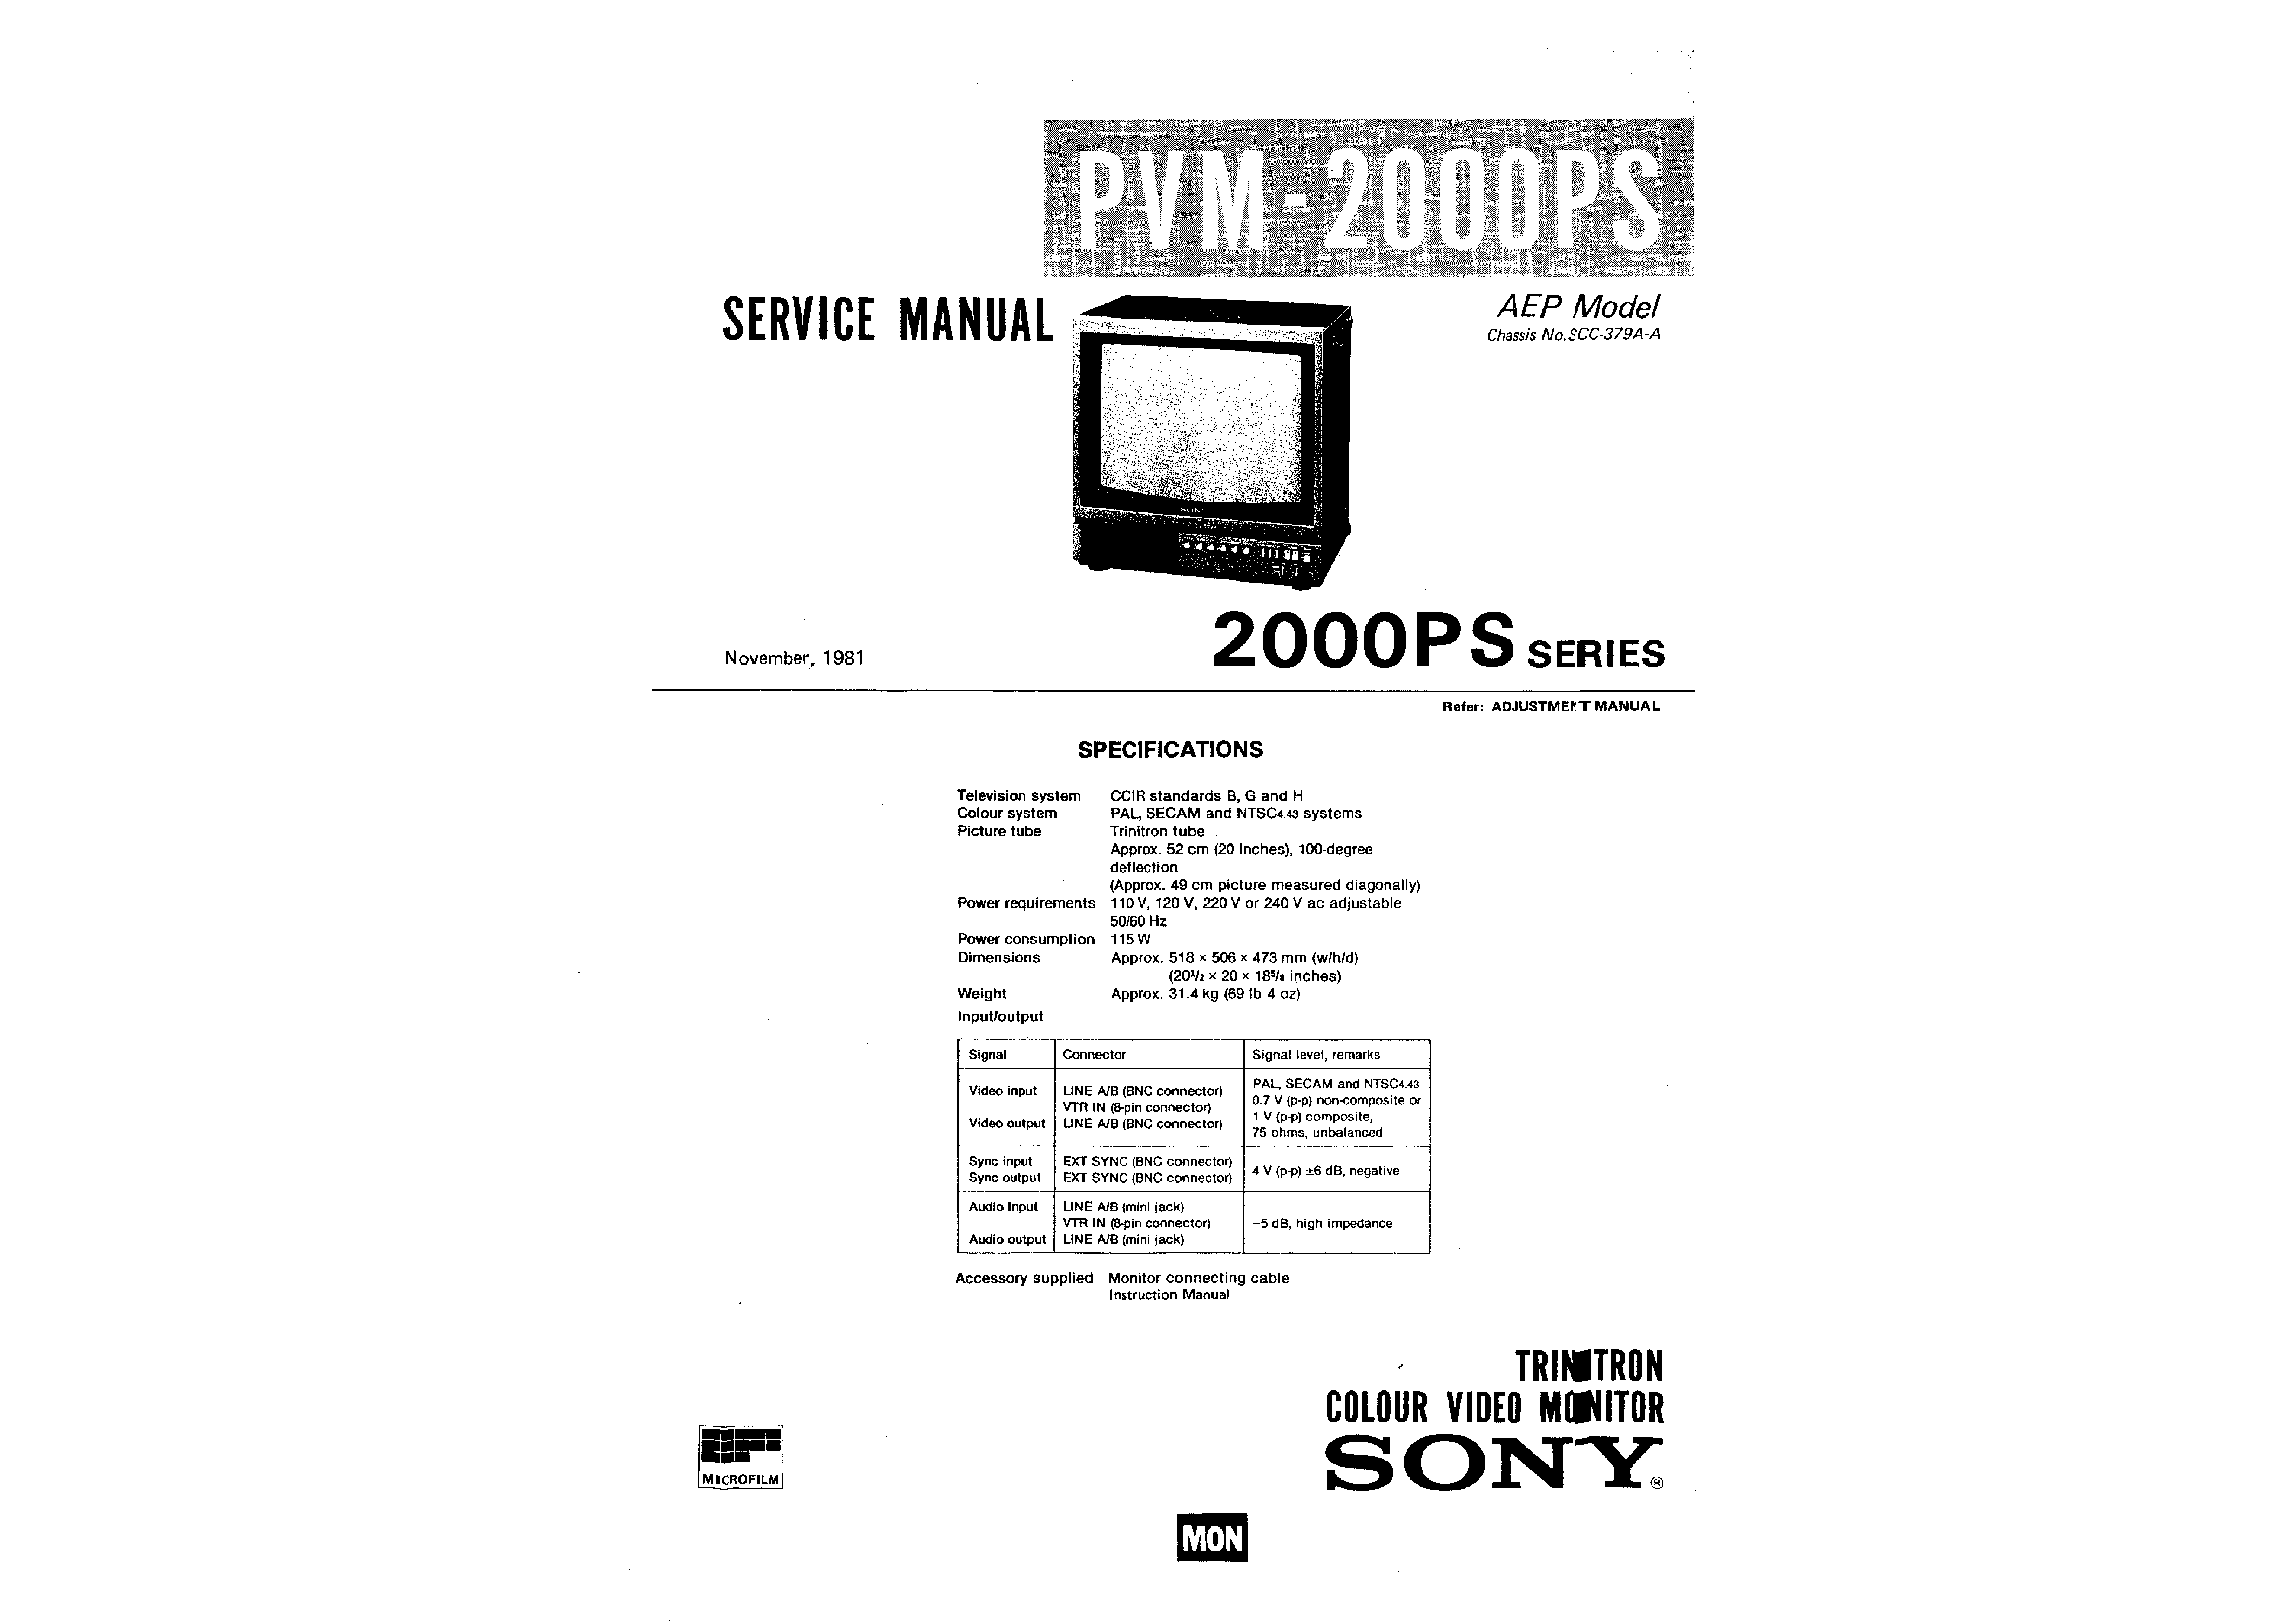 Sony Pvm 9041qm Manual Auto Electrical Wiring Diagram Craftsman Tractor 917273220 2000ps